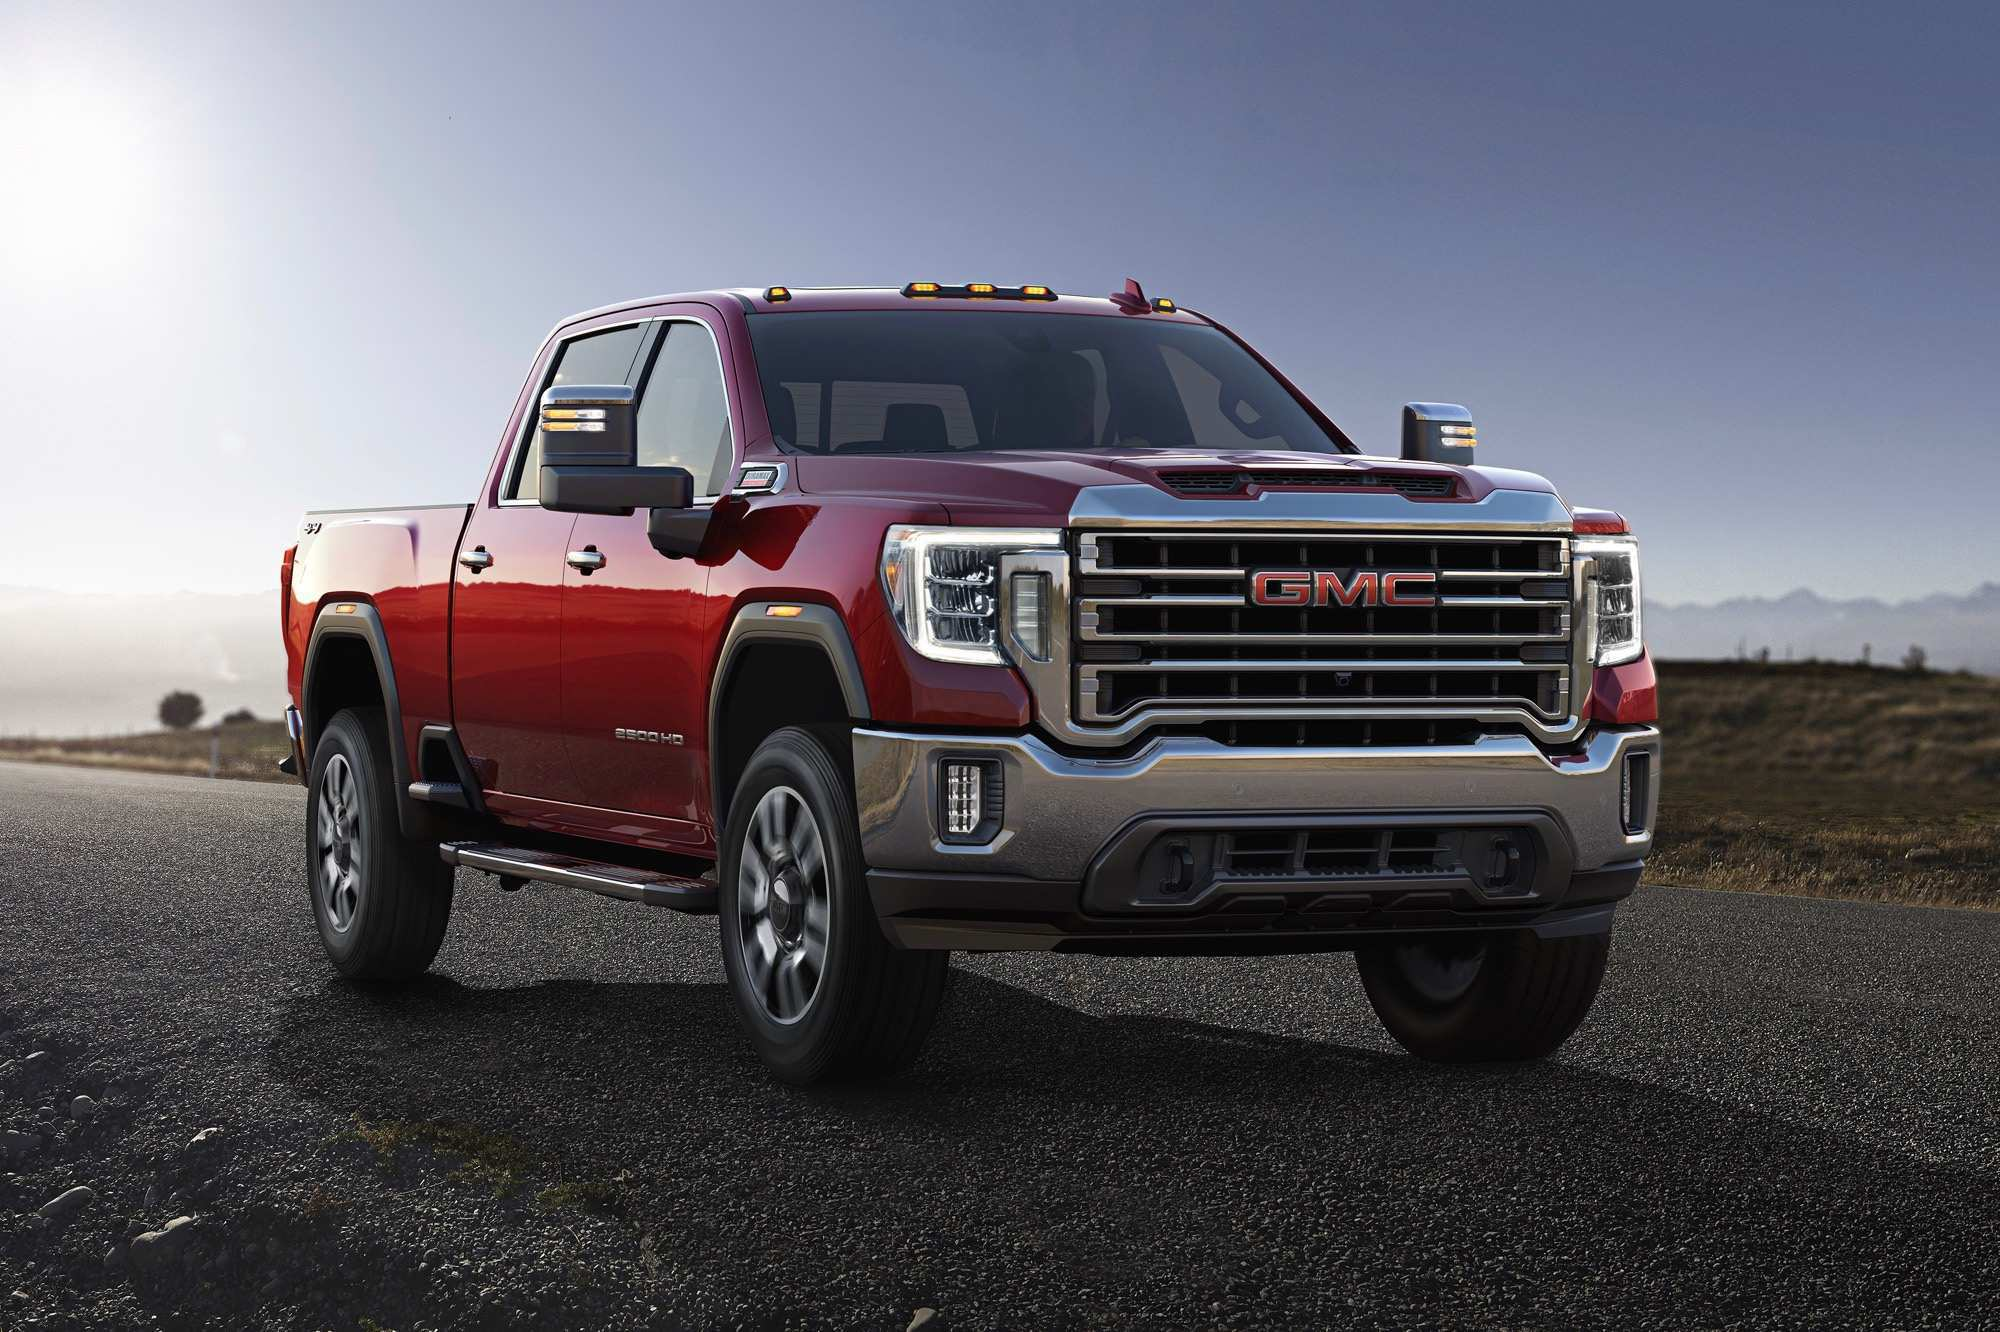 30 New Gmc New Truck 2020 Prices for Gmc New Truck 2020